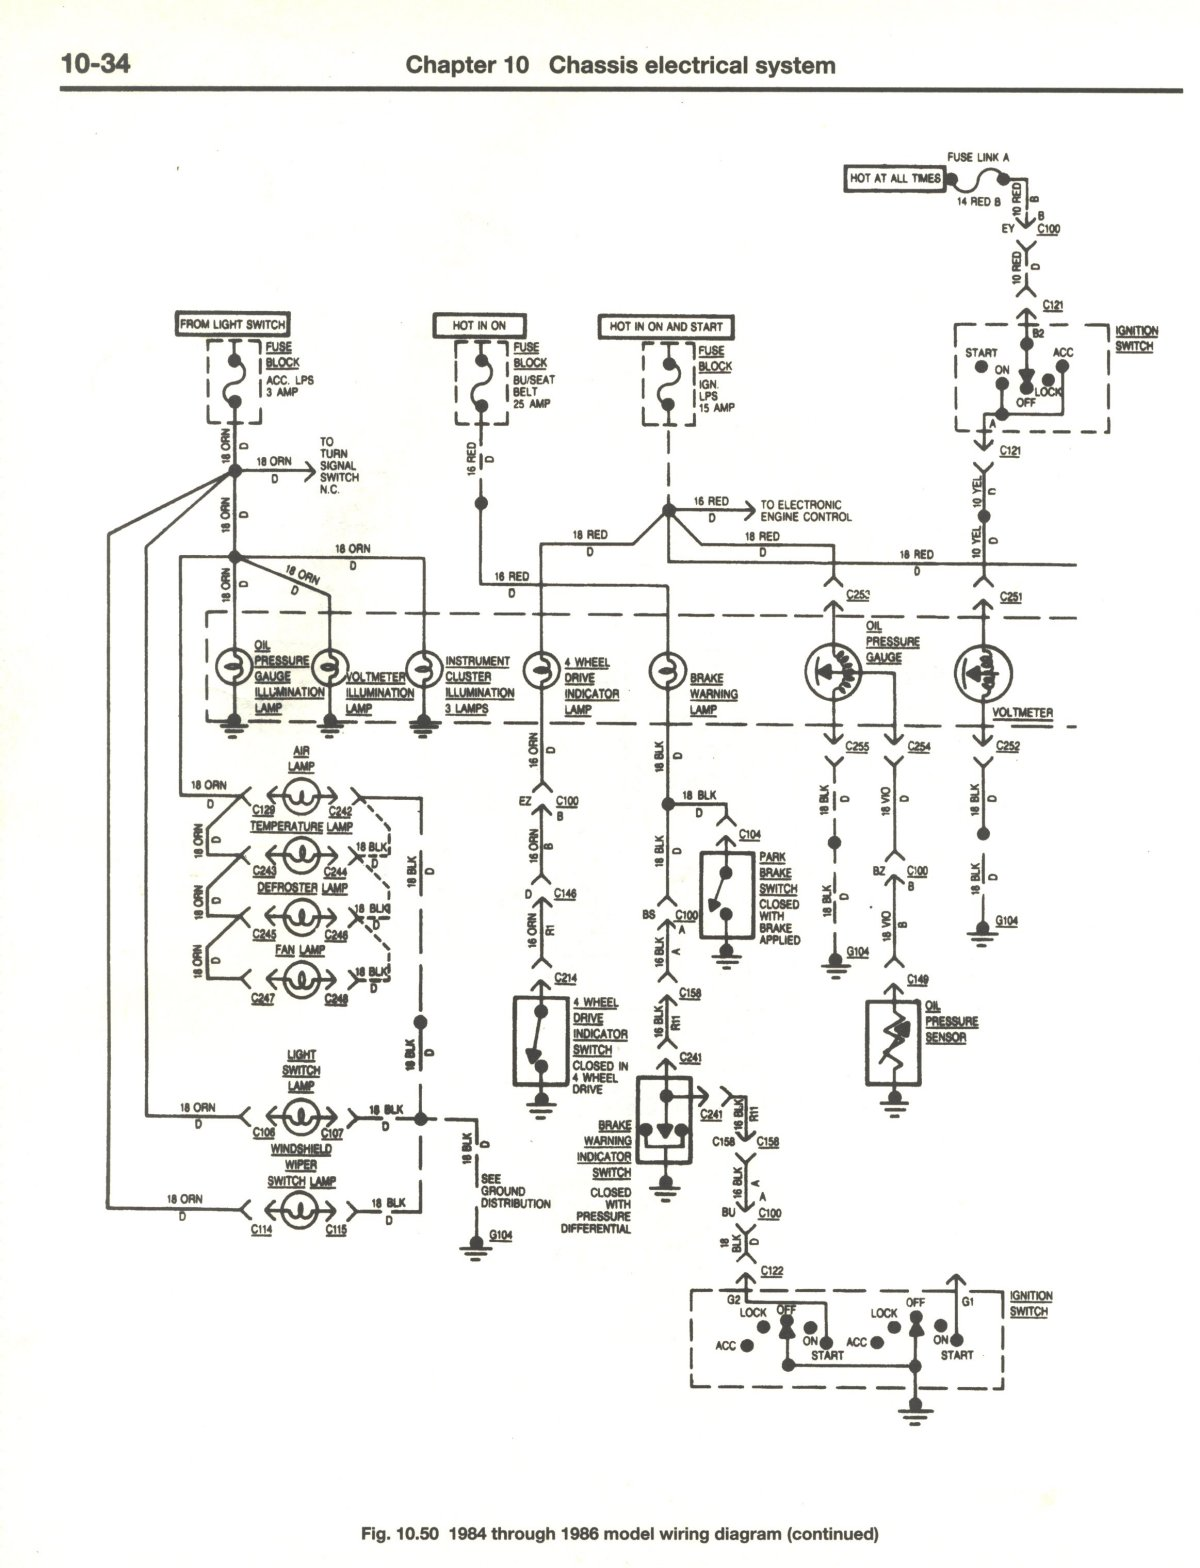 84-86DashLights  Cj Wiring Diagram Rear on 86 cj7 wiper motor, cj7 wiring harness diagram, 1983 cj7 vacuum lines diagram, 1980 v8 cj7 starting wire diagram, 85 cj7 wiring diagram, jeep cj7 engine diagram, cj7 fuel line diagram, cj7 heater diagram, 258 jeep engine wiring diagram, 84 cj7 fuel diagram, cj7 tail light wiring diagram, 86 cj7 distributor diagram,